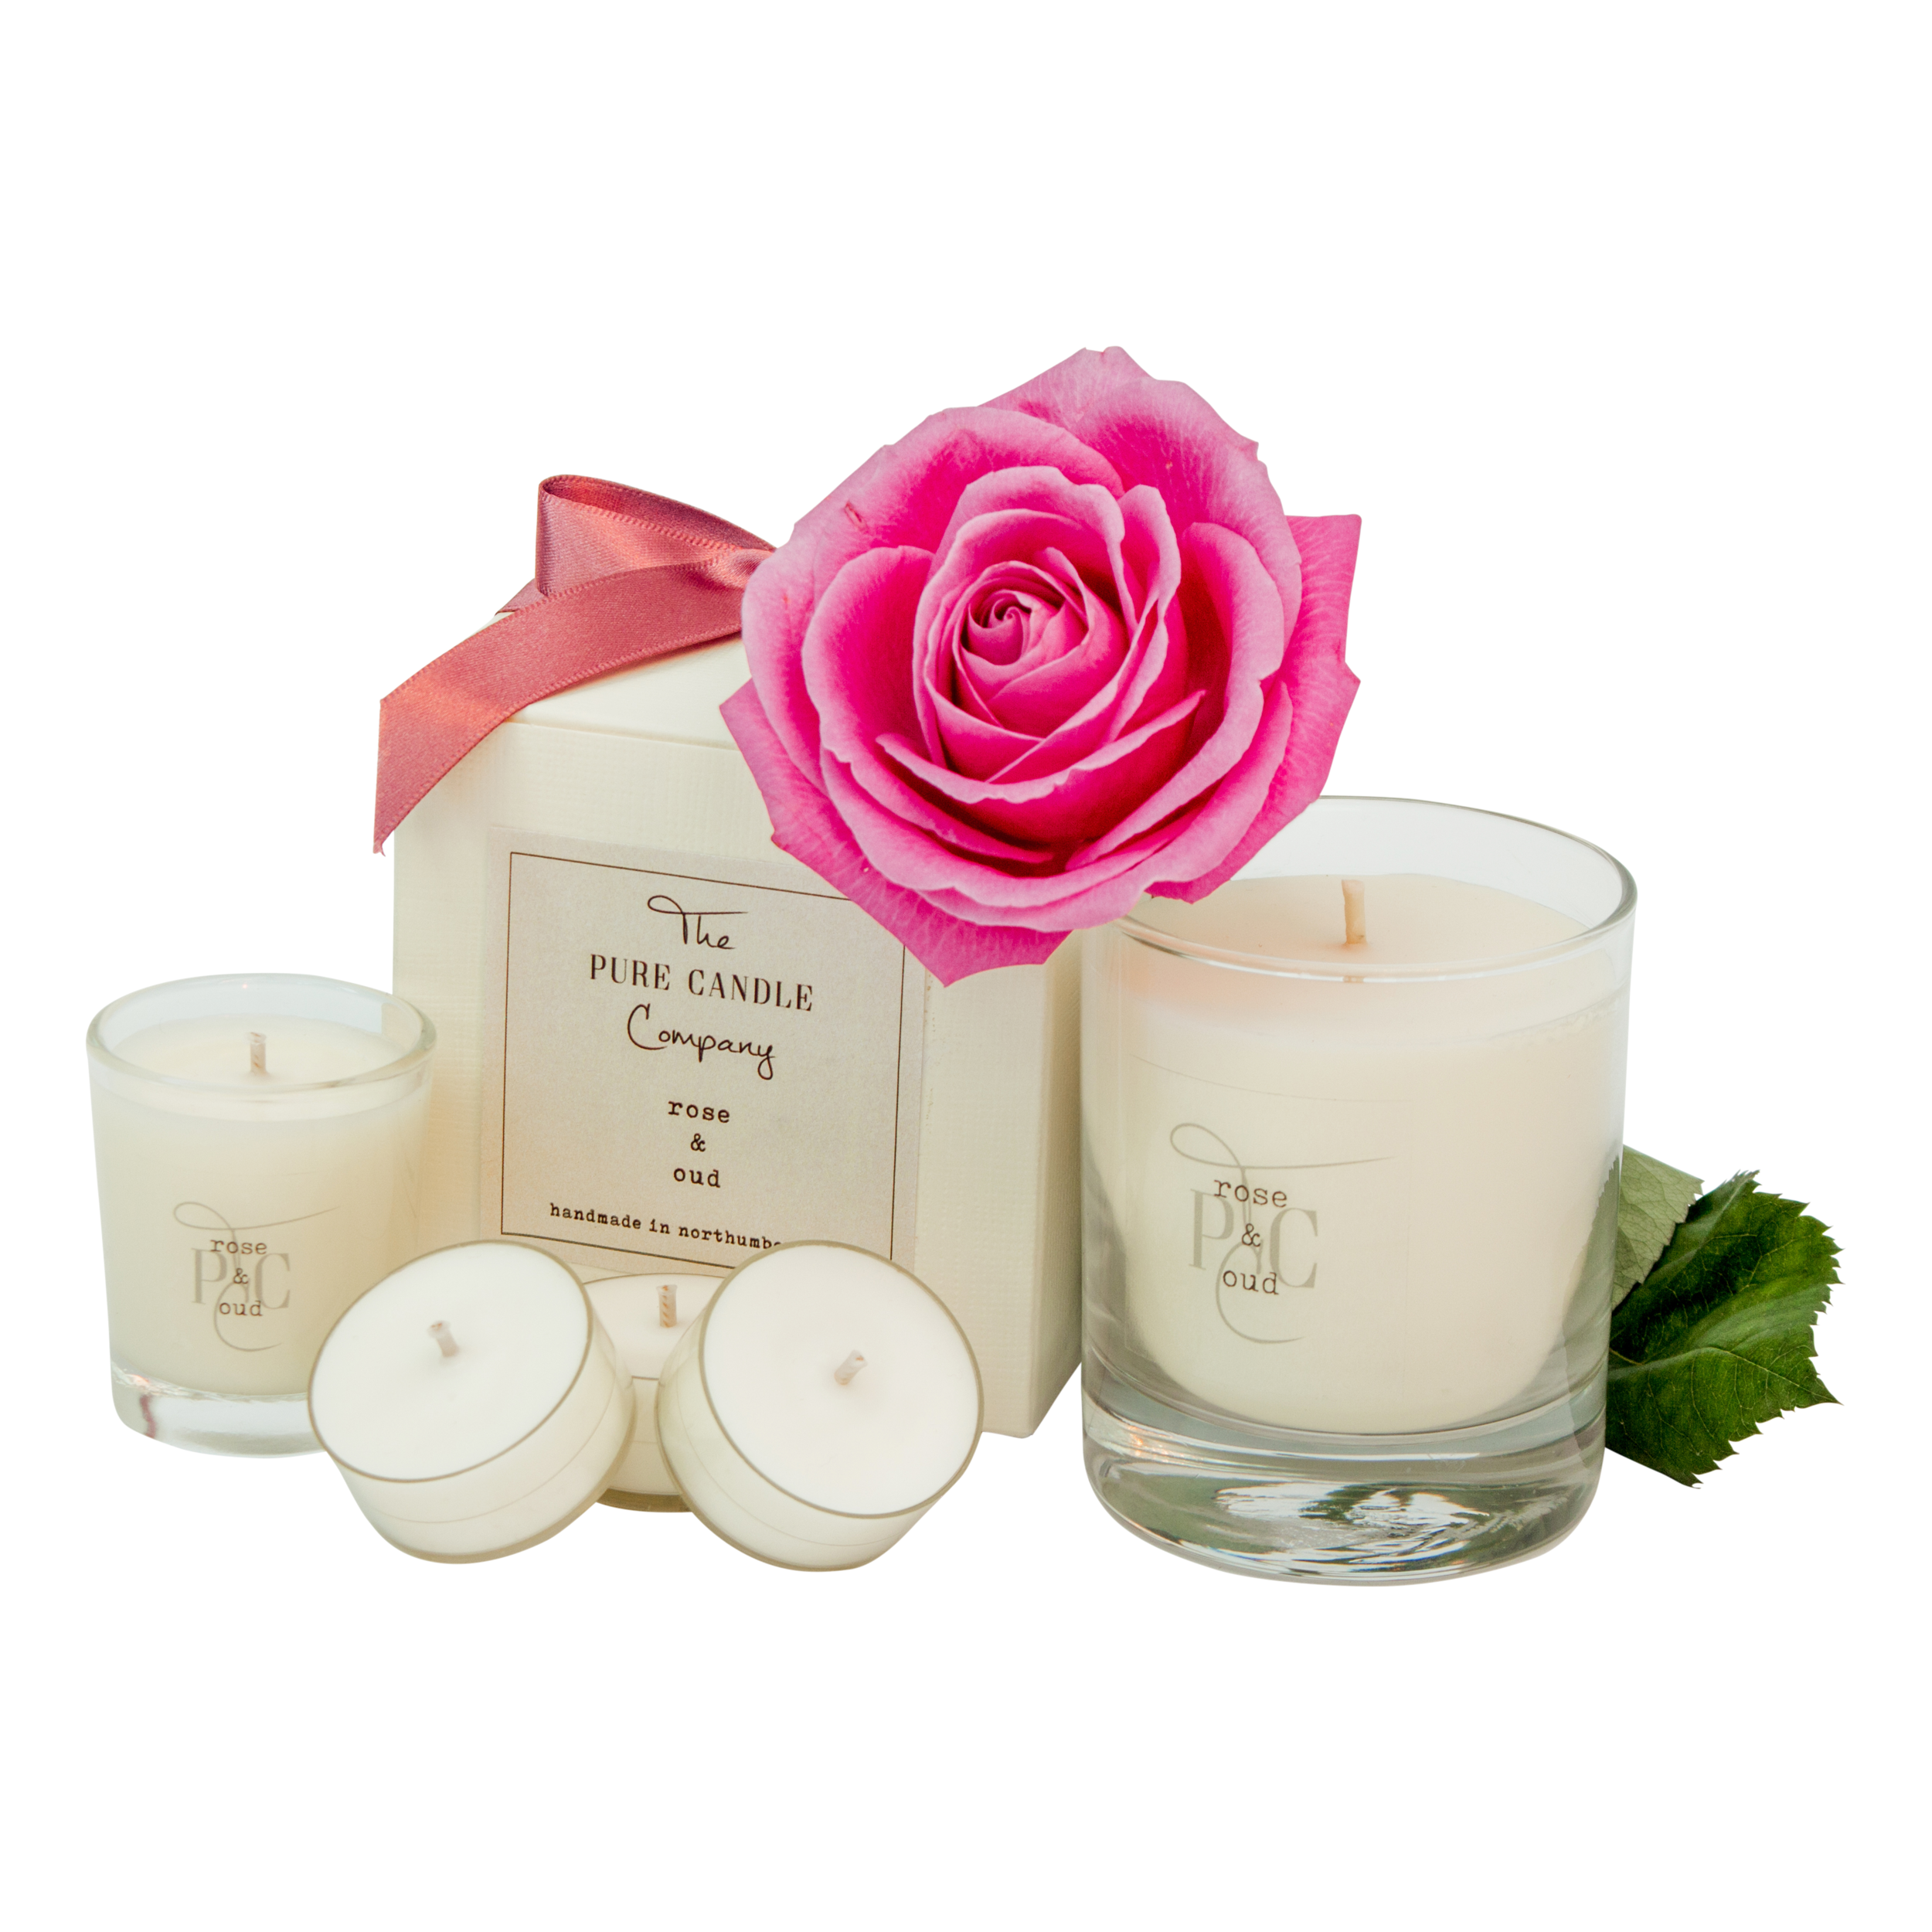 The Pure Candle Company Rose & Oud soy wax candle. Our 100% soy wax candles are eco-friendly, clean burn candles, handmade in the UK, hand-poured into glass jars.